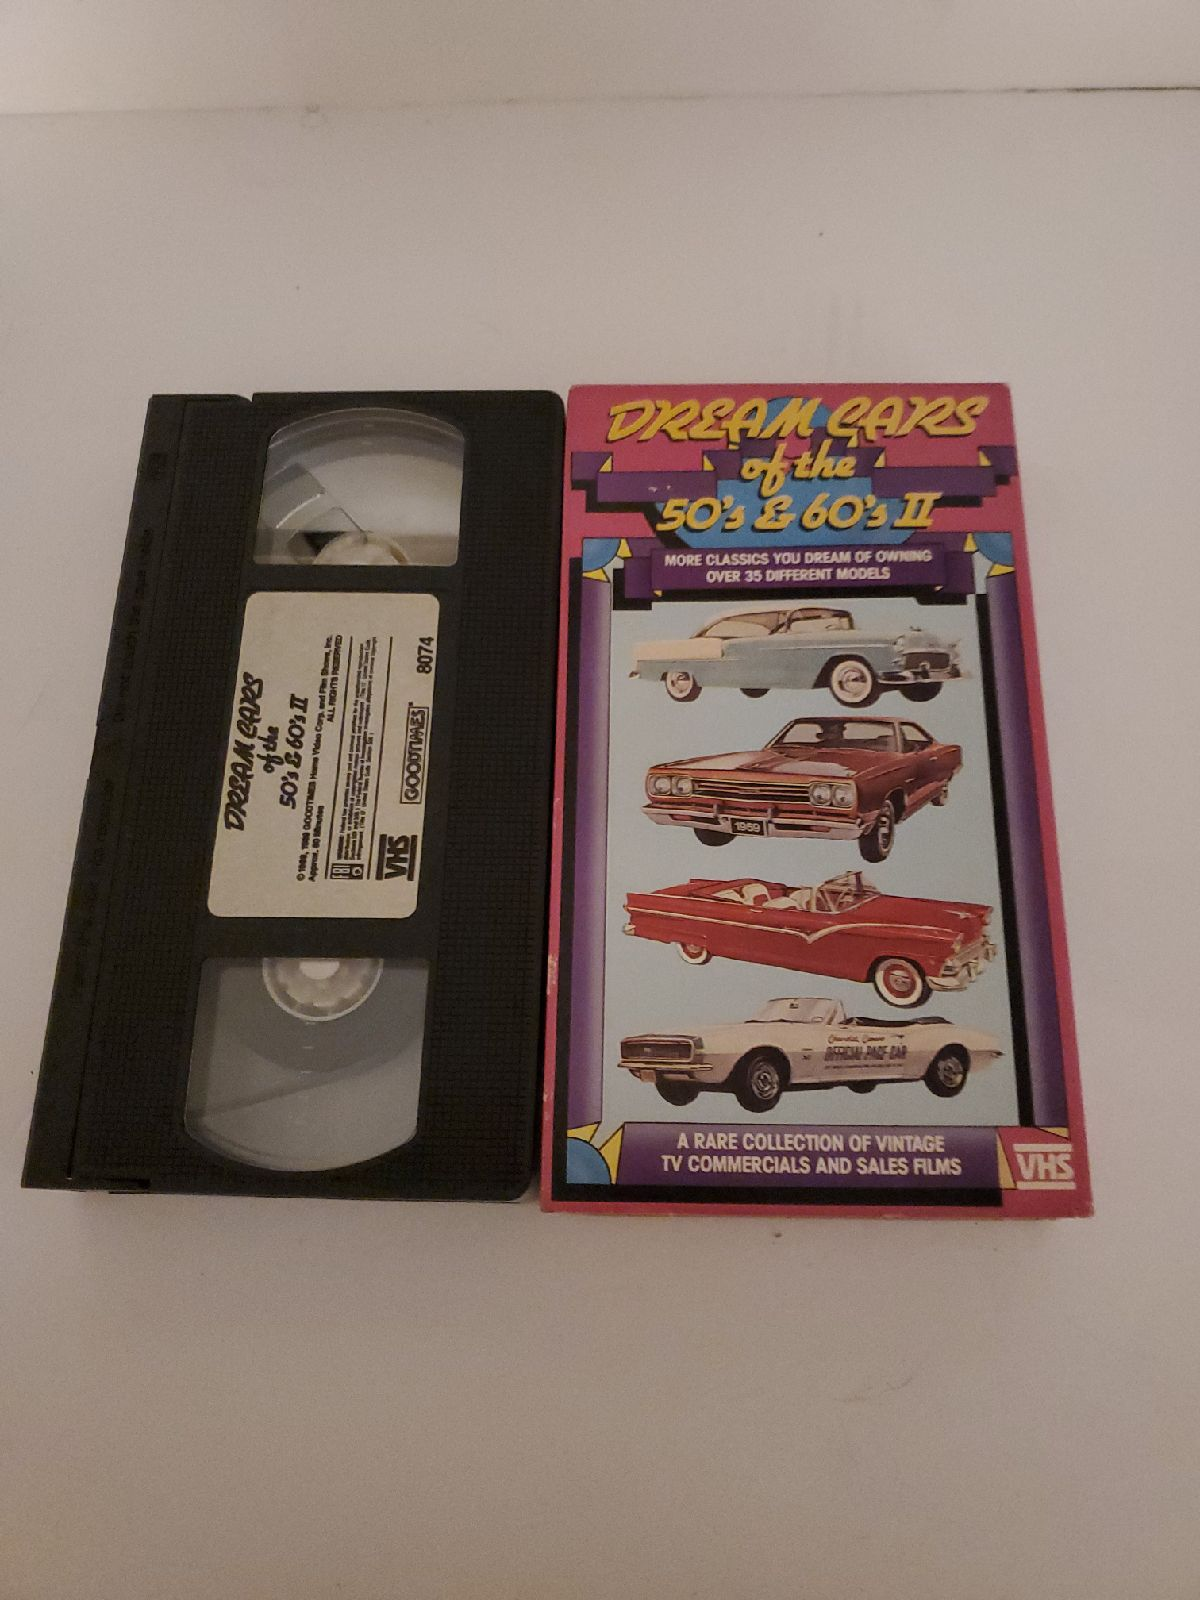 Dream Cars of the 50s & 60s II vhs tape